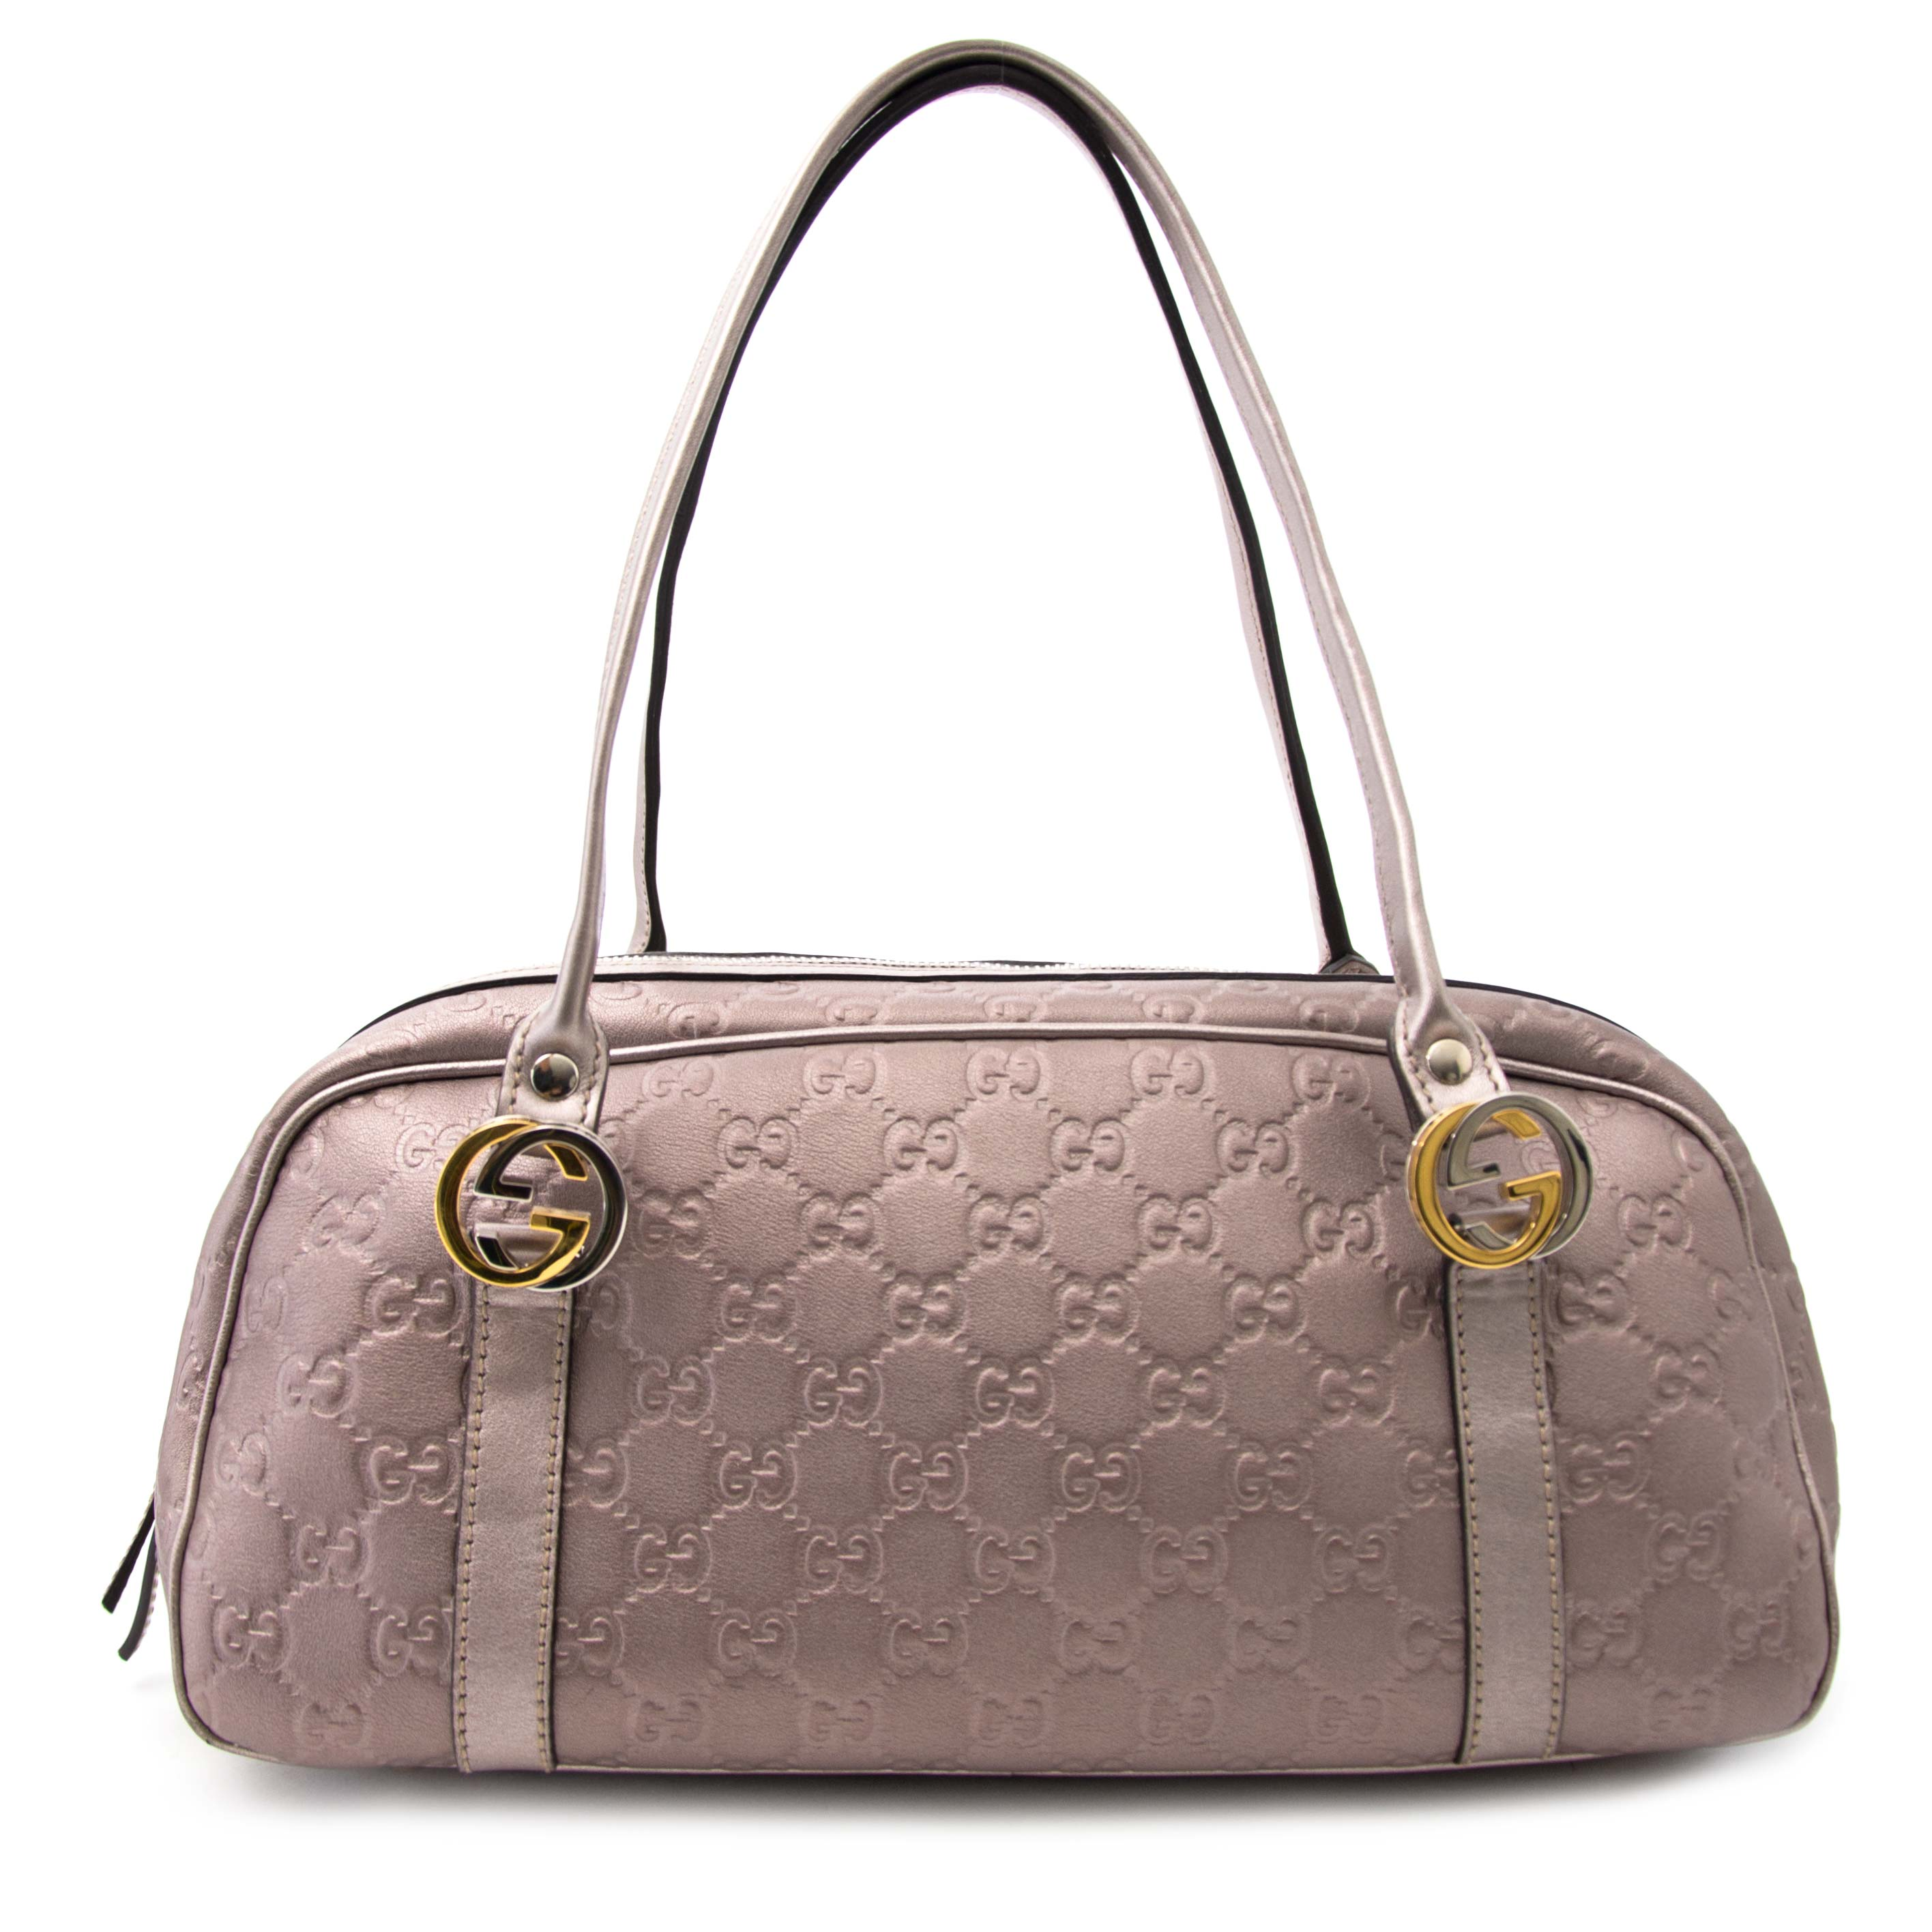 Koop uw Gucci Guccisima Metallic Rose Bowling Bag